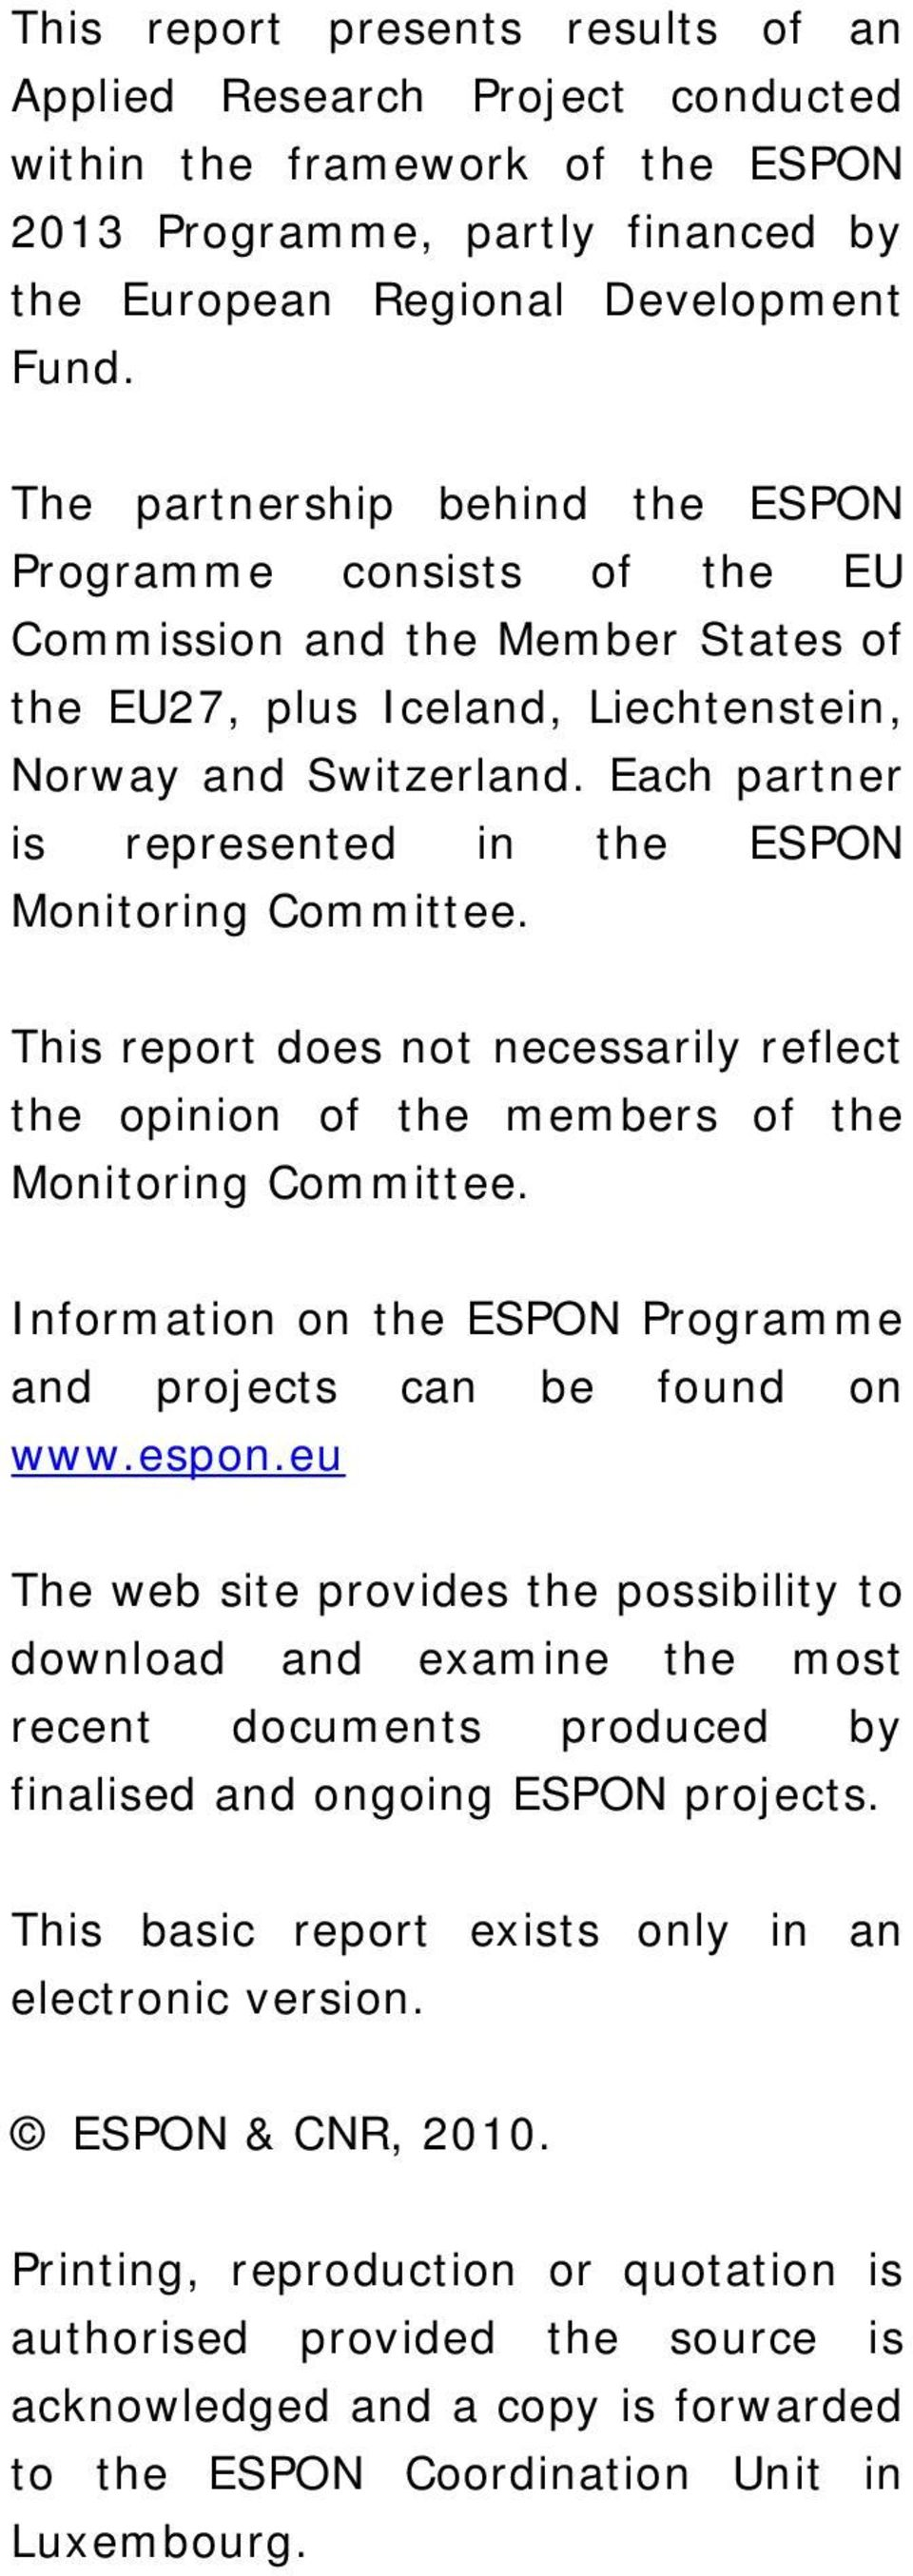 Each partner is represented in the ESPON Monitoring Committee. This report does not necessarily reflect the opinion of the members of the Monitoring Committee.